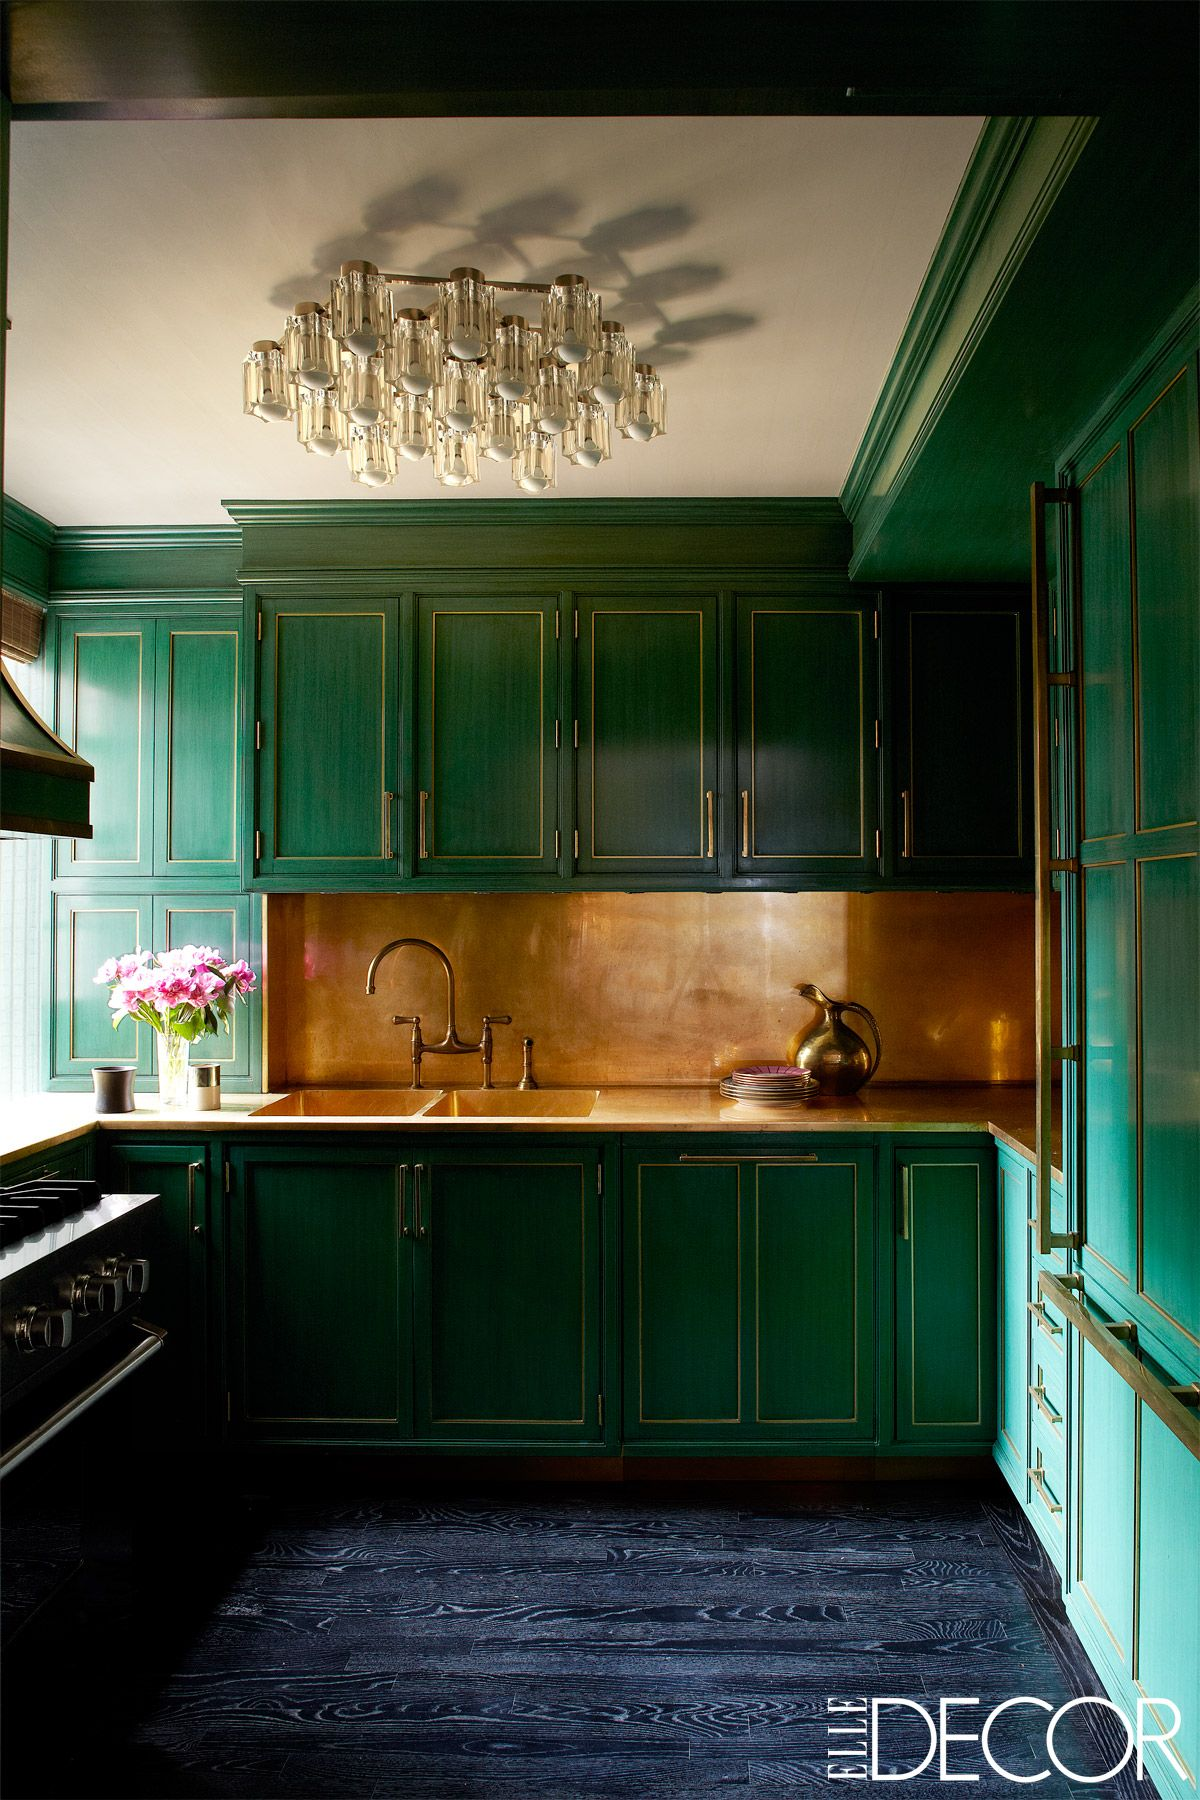 31 Green Kitchen Design Ideas - Paint Colors for Green Kitchens